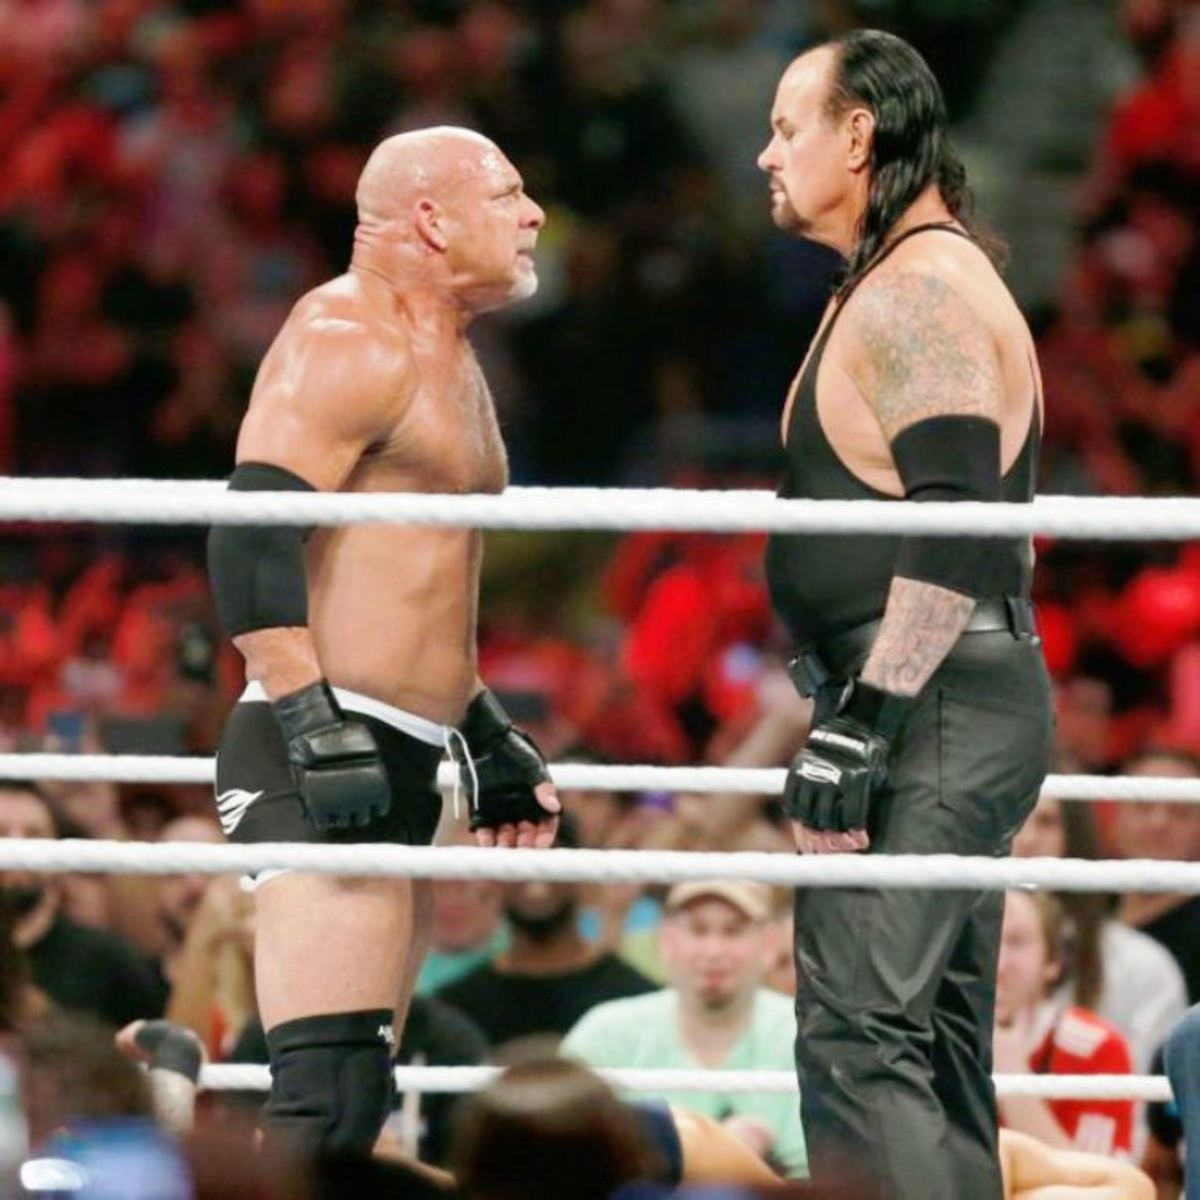 A stare-down between Goldberg and The Undertaker at the Royal Rumble (2017).